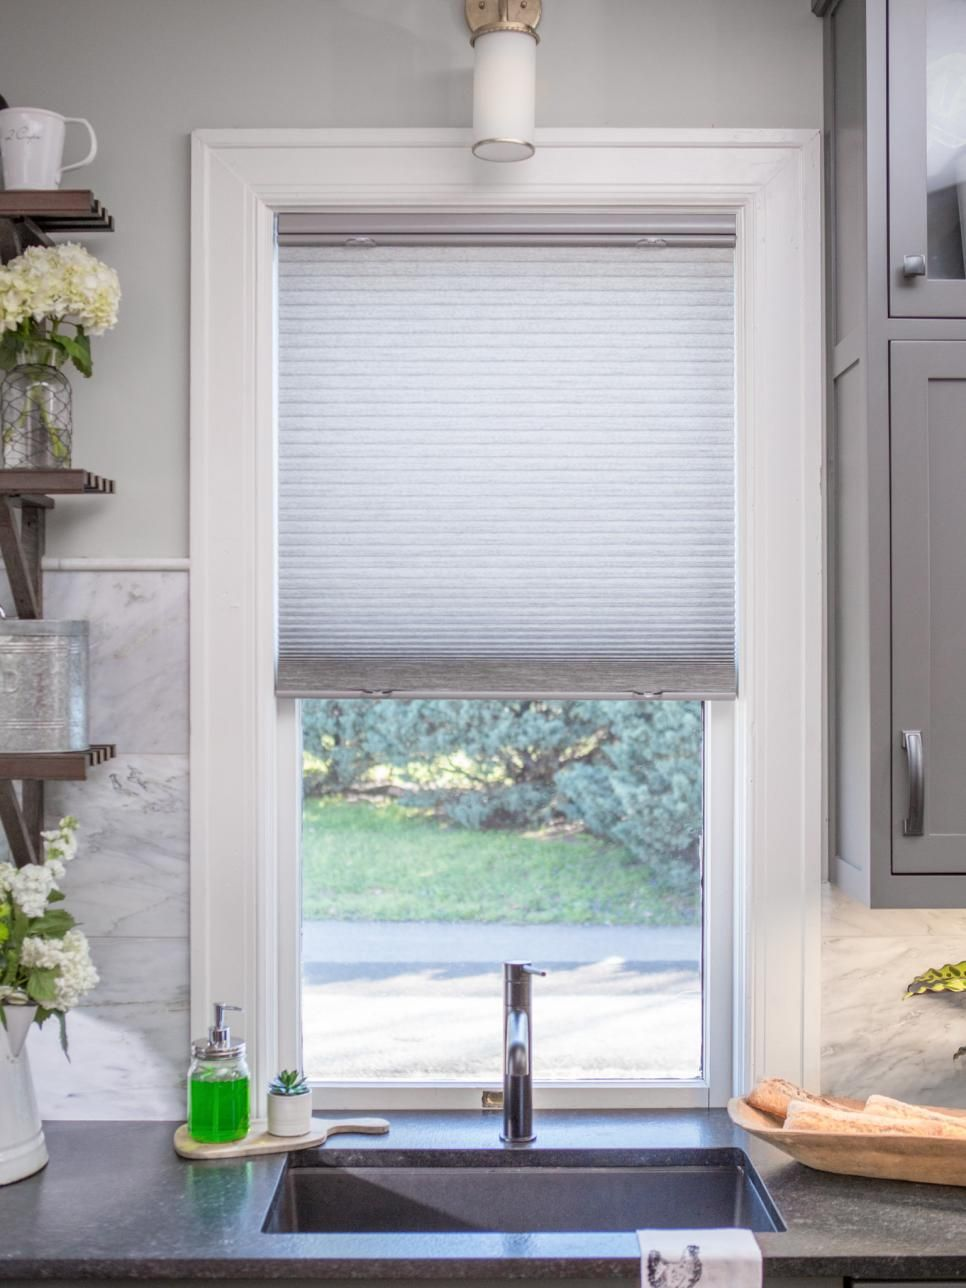 20 Top Window Treatment Trends | Window, Shades blinds and Window ...